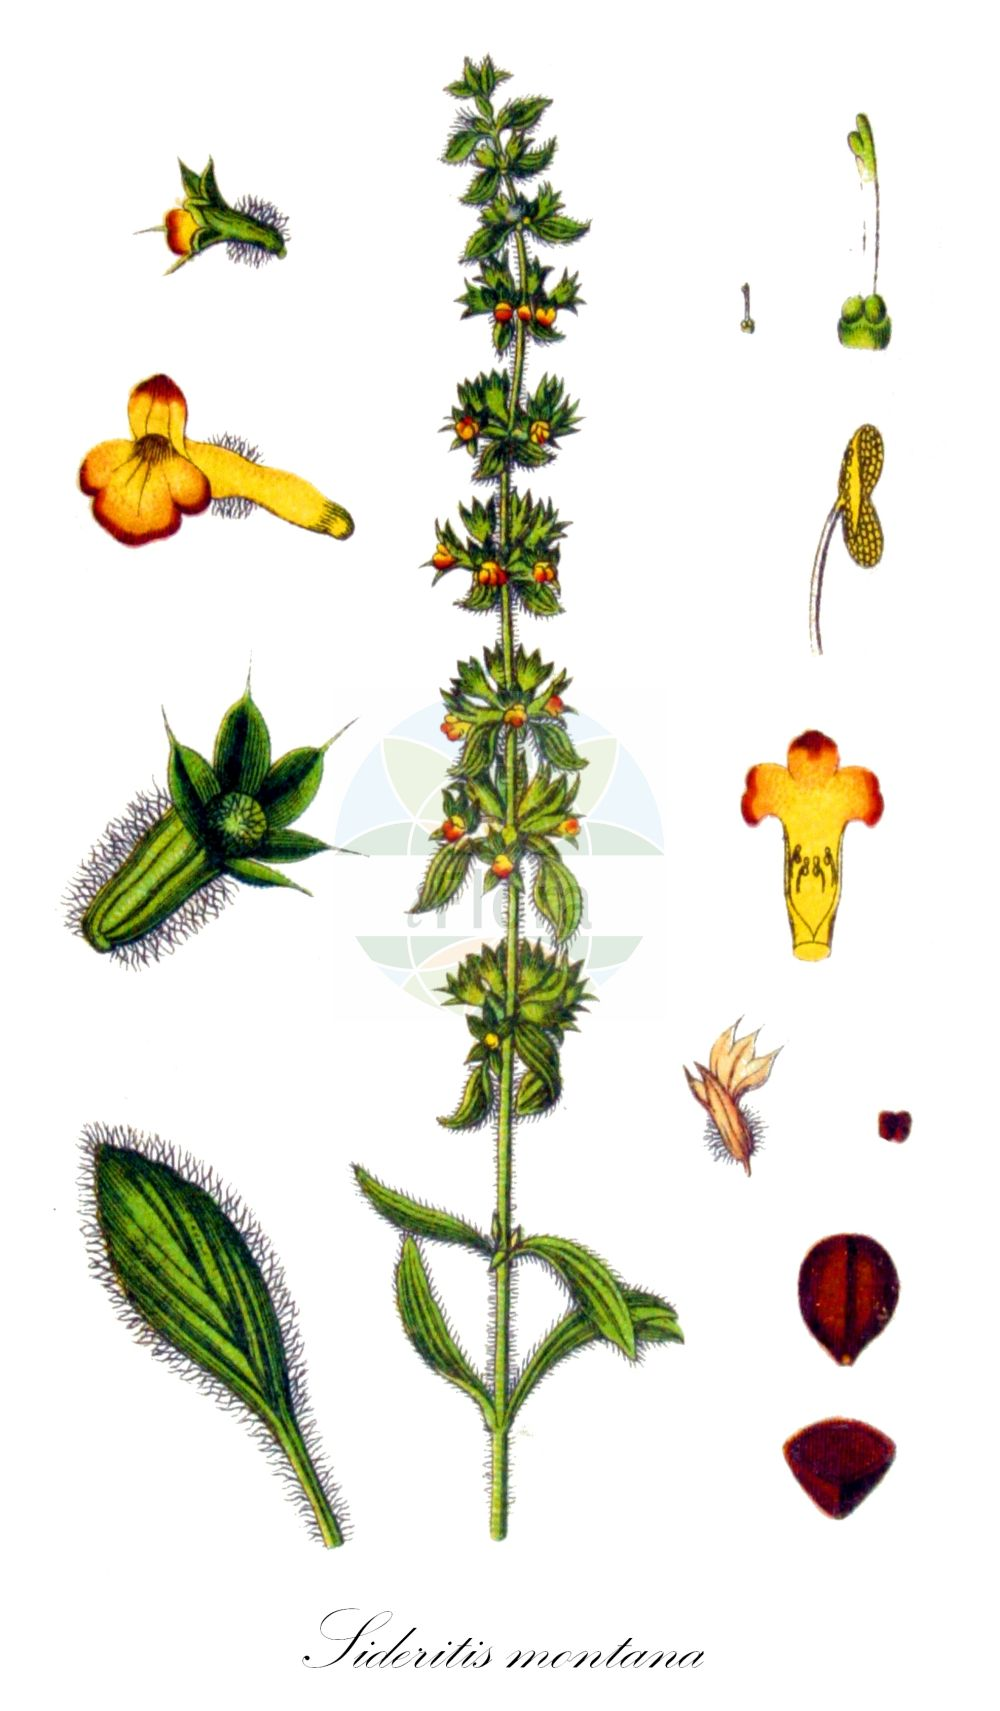 Historische Abbildung von Sideritis montana (Berg-Gliedkraut - Mountain Ironwort). Das Bild zeigt Blatt, Bluete, Frucht und Same. ---- Historical Drawing of Sideritis montana (Berg-Gliedkraut - Mountain Ironwort).The image is showing leaf, flower, fruit and seed.(Sideritis montana,Berg-Gliedkraut,Mountain Ironwort,Burgsdorfia montana,Hesiodia montana,,Field Ironwort,Sideritis,Gliedkraut,Ironwort,Lamiaceae,Lippenbluetengewaechse;Lippenbluetler,Nettle family,Blatt,Bluete,Frucht,Same,leaf,flower,fruit,seed,Sturm (1796f))